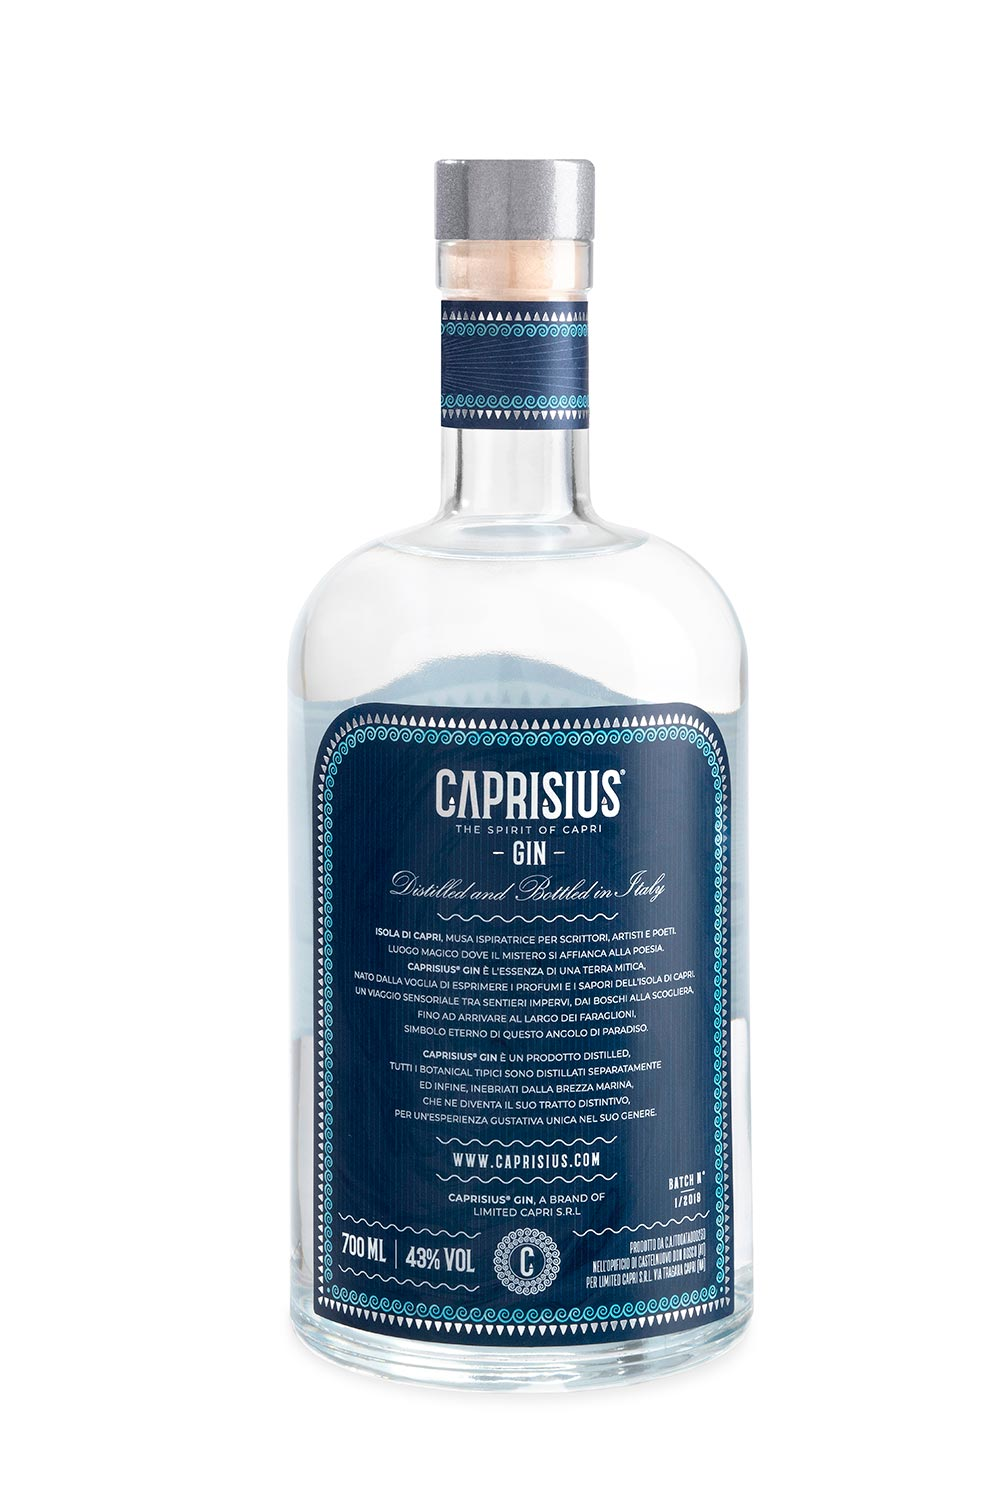 caprisius back label 1500 - Branding & Label Design Caprisius Gin